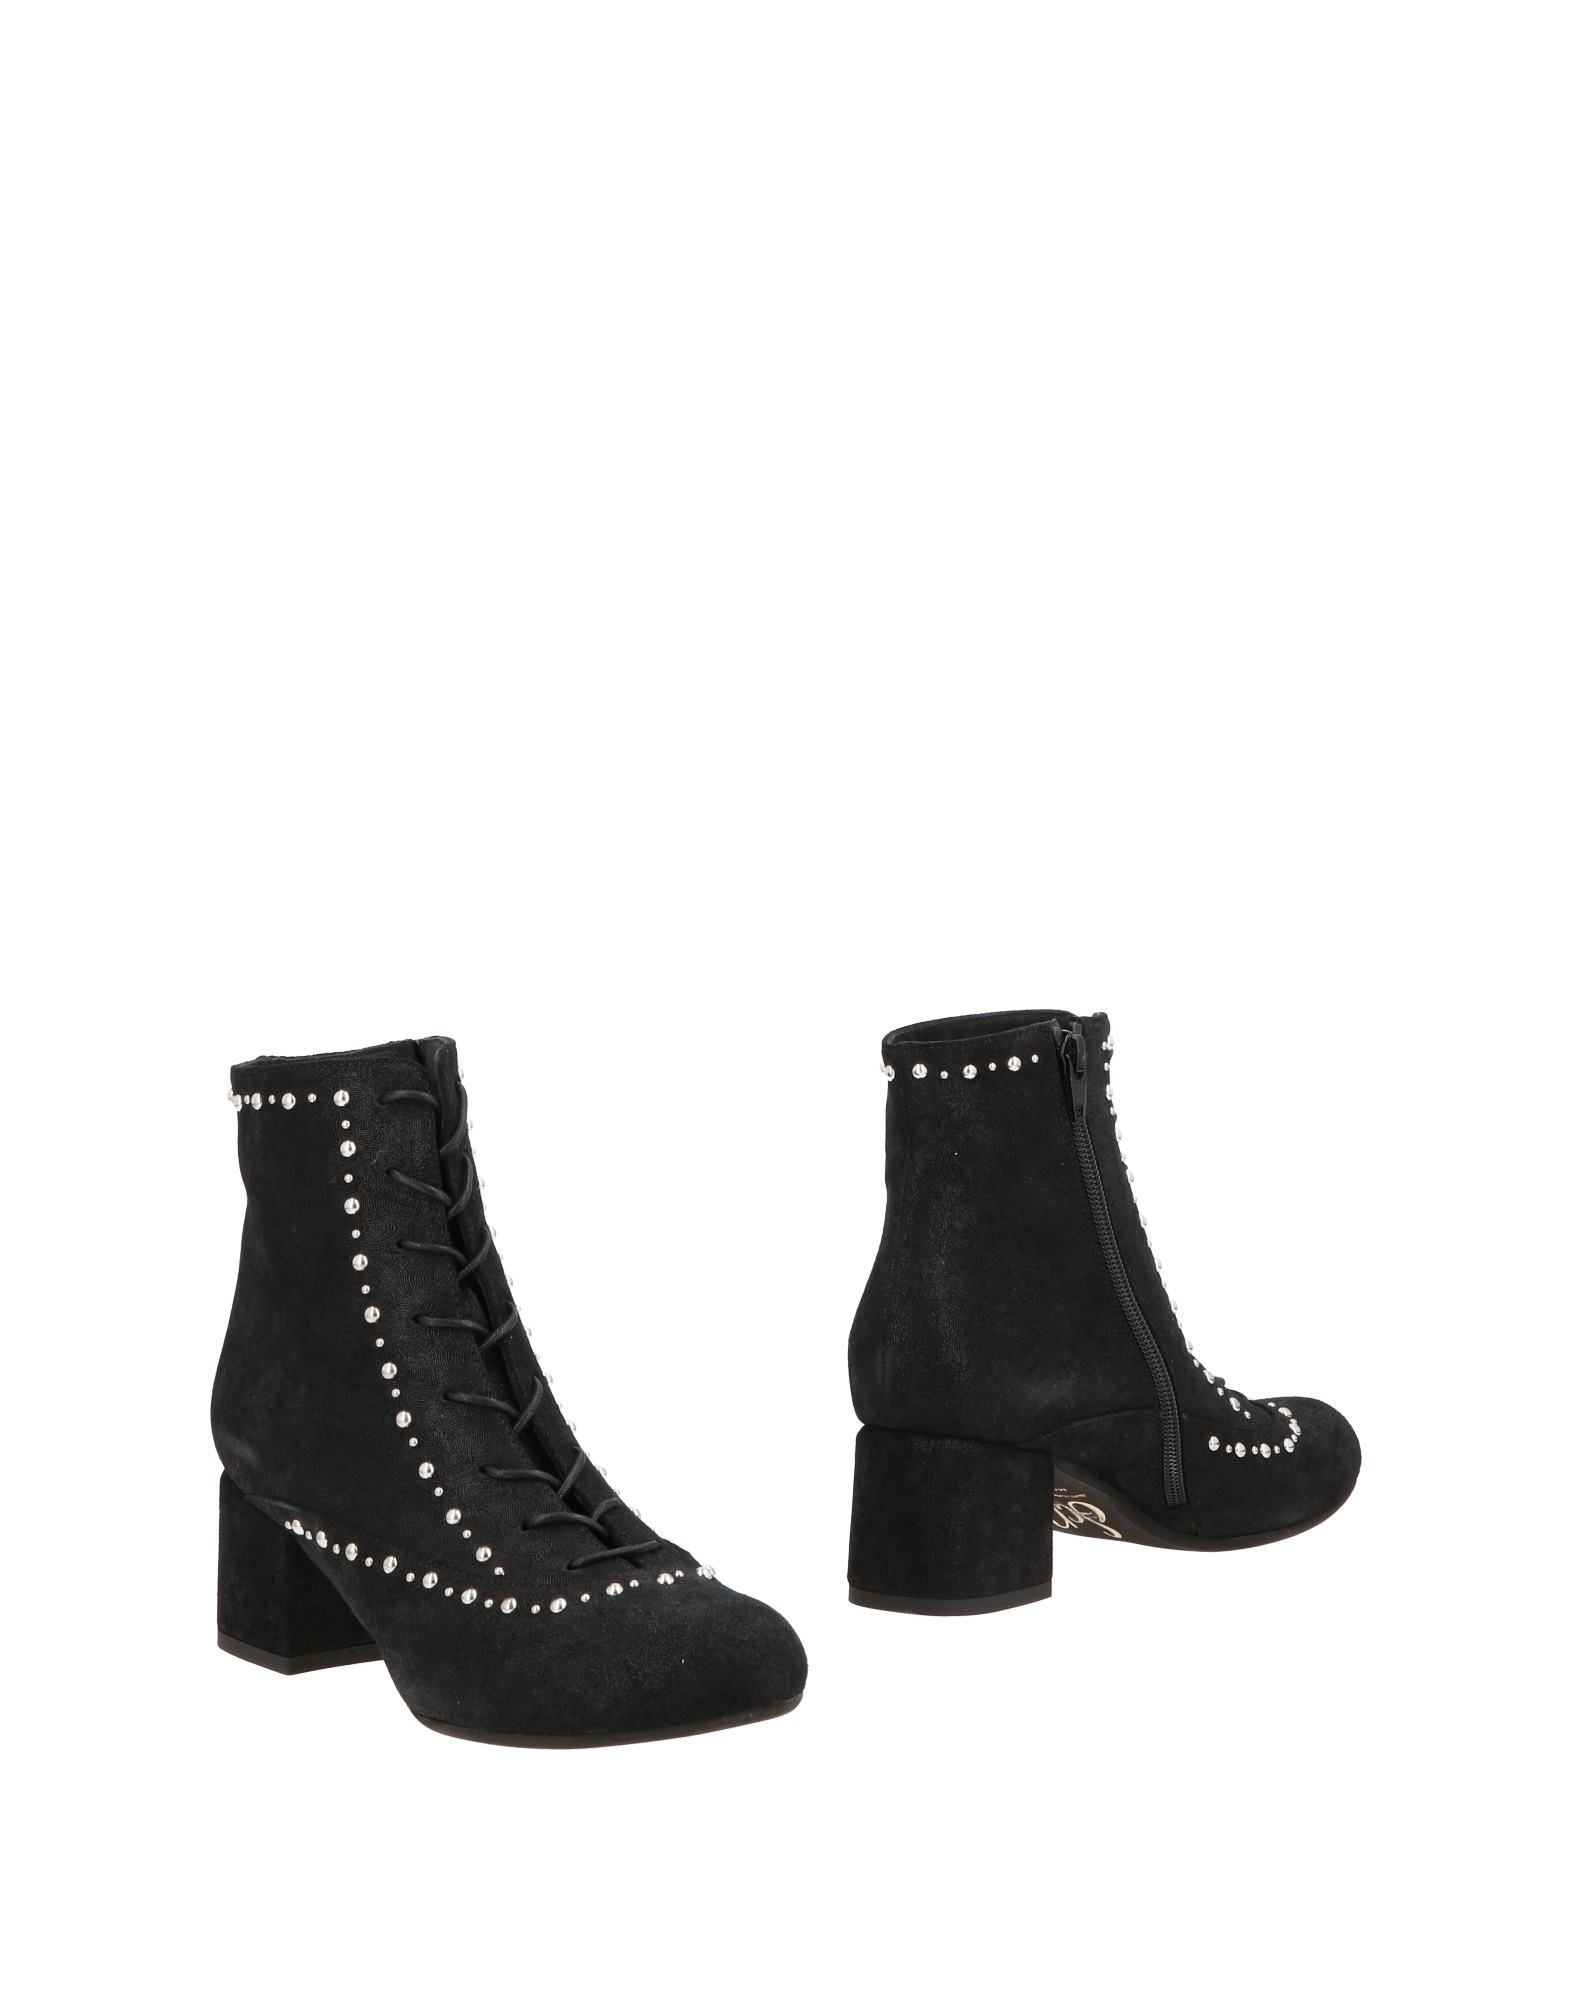 Sgn Giancarlo Paoli Sgn Ankle Boot - Women Sgn Paoli Giancarlo Paoli Ankle Boots online on  Australia - 11474753SB 751b4c